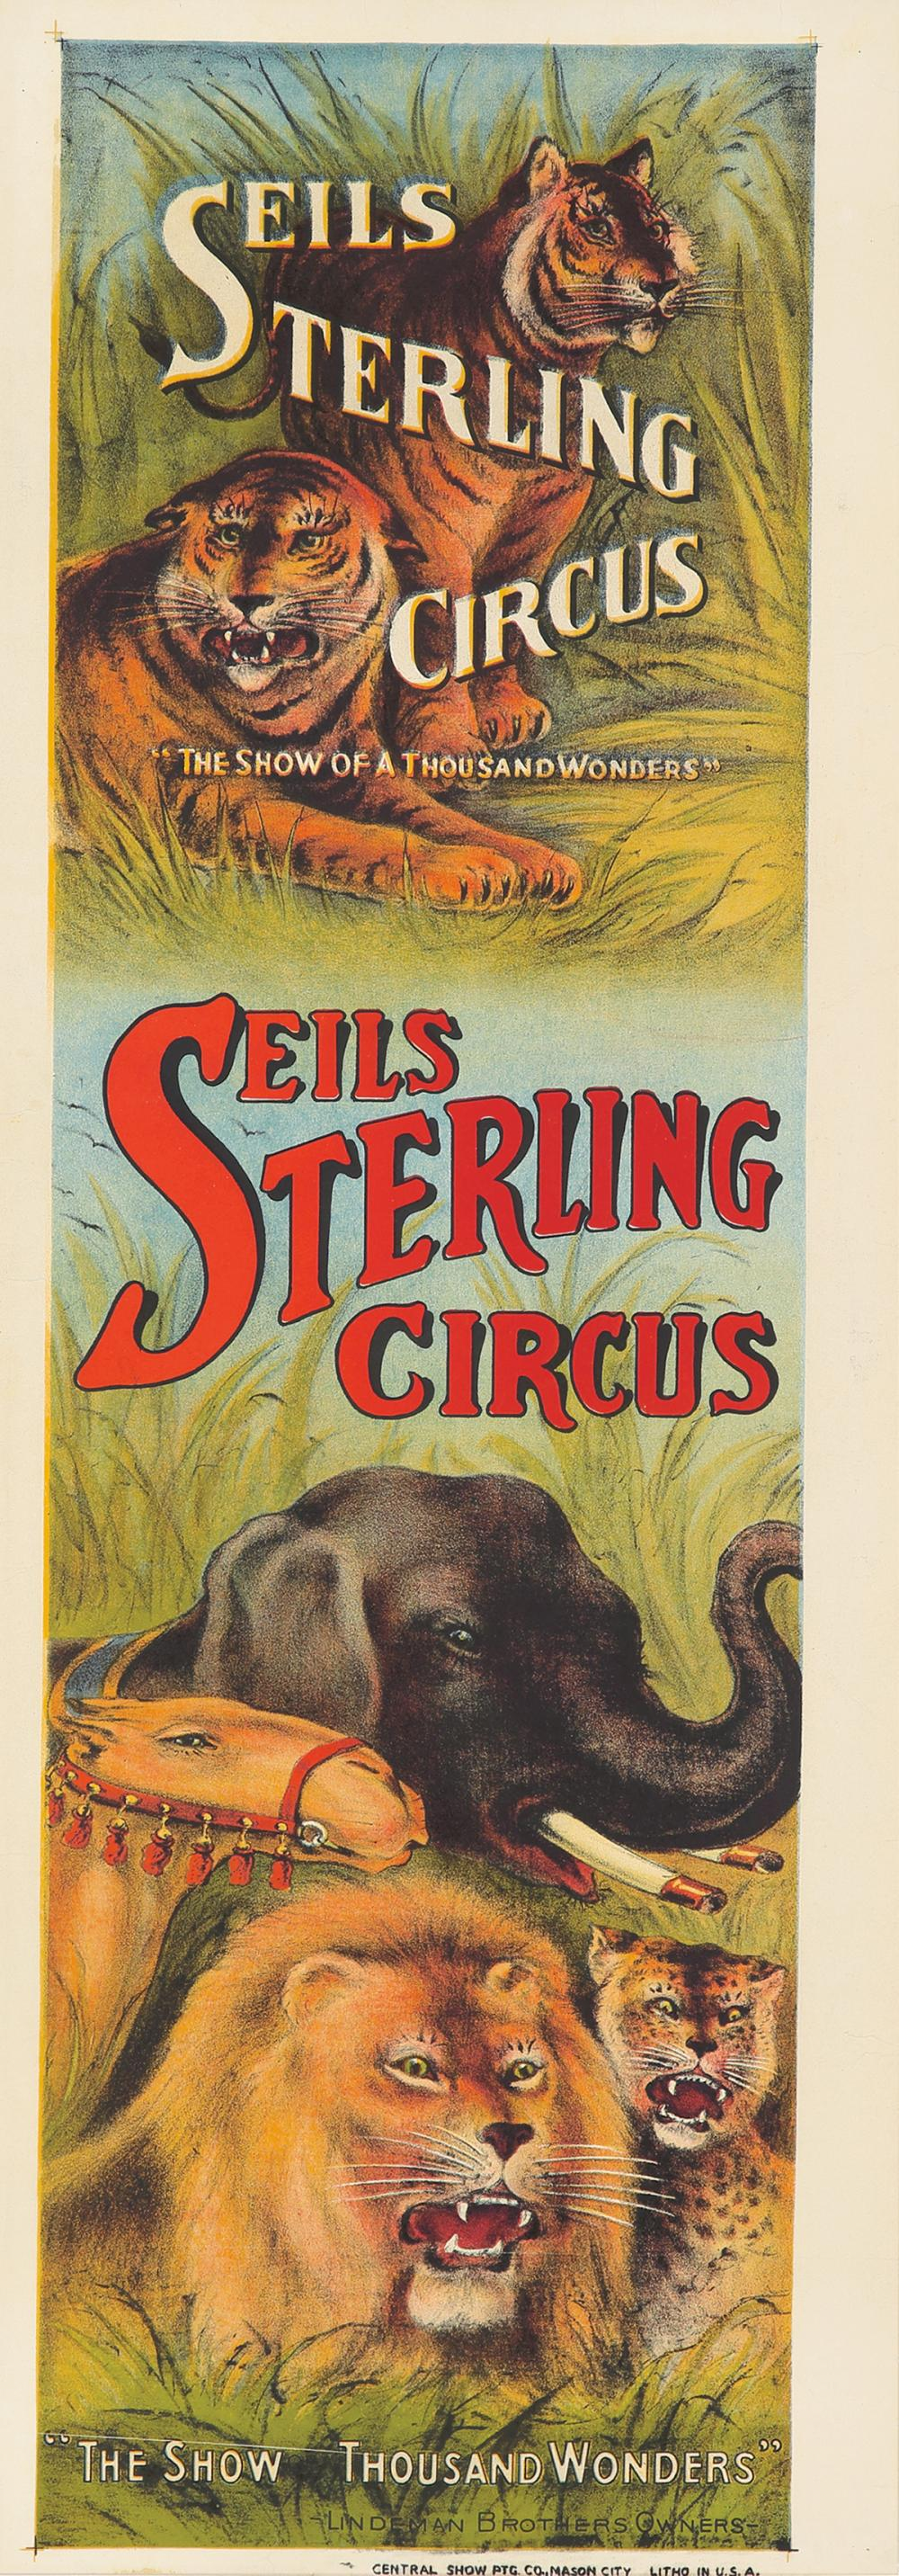 Seils Sterling Circus.